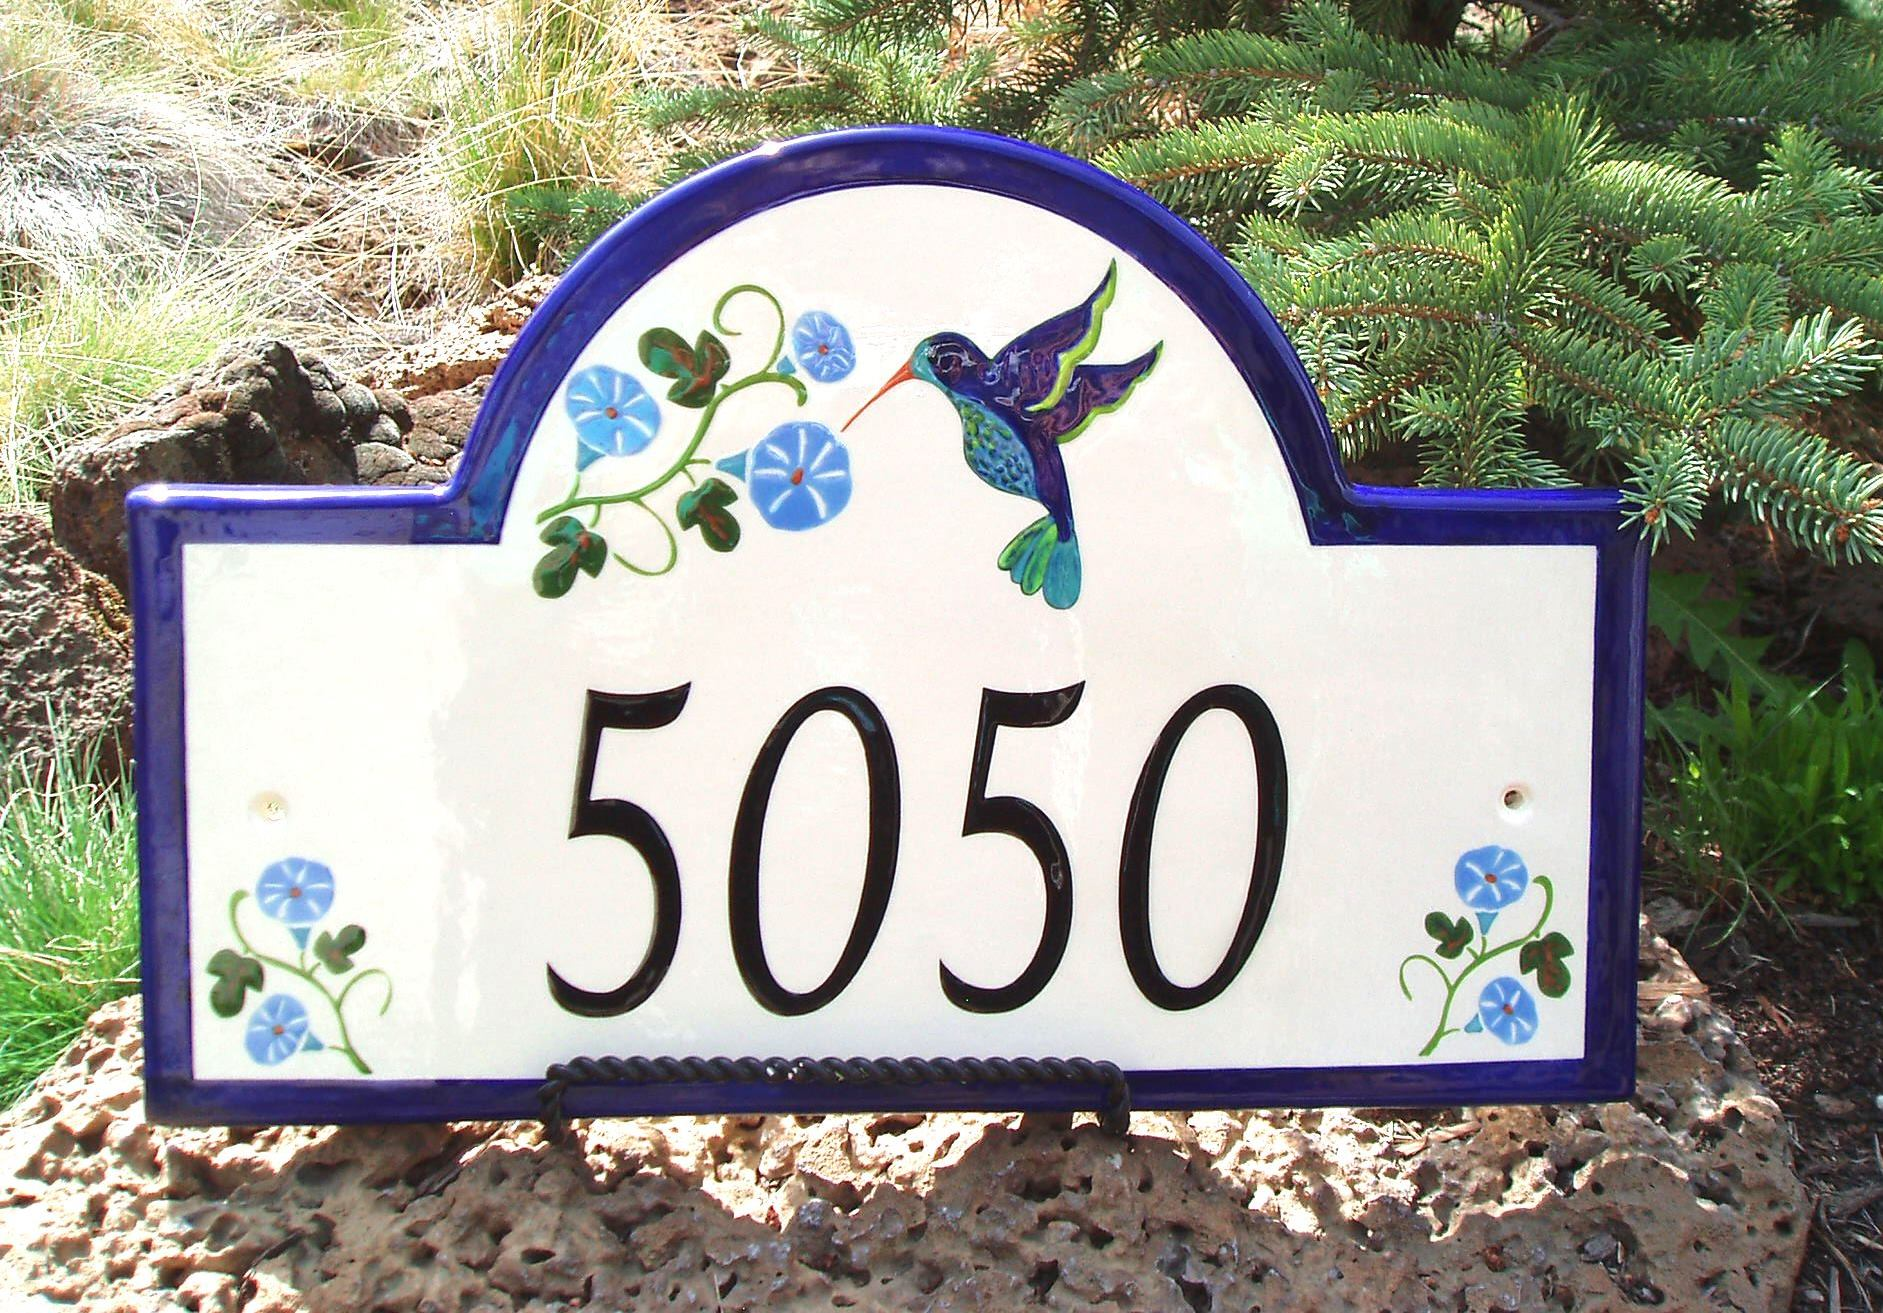 Address plaques gallery ceramic address plaques ceramic house i received our tuscany style house number plaques last evening i think they are spectacular thanks for a wonderful unusual product dailygadgetfo Choice Image